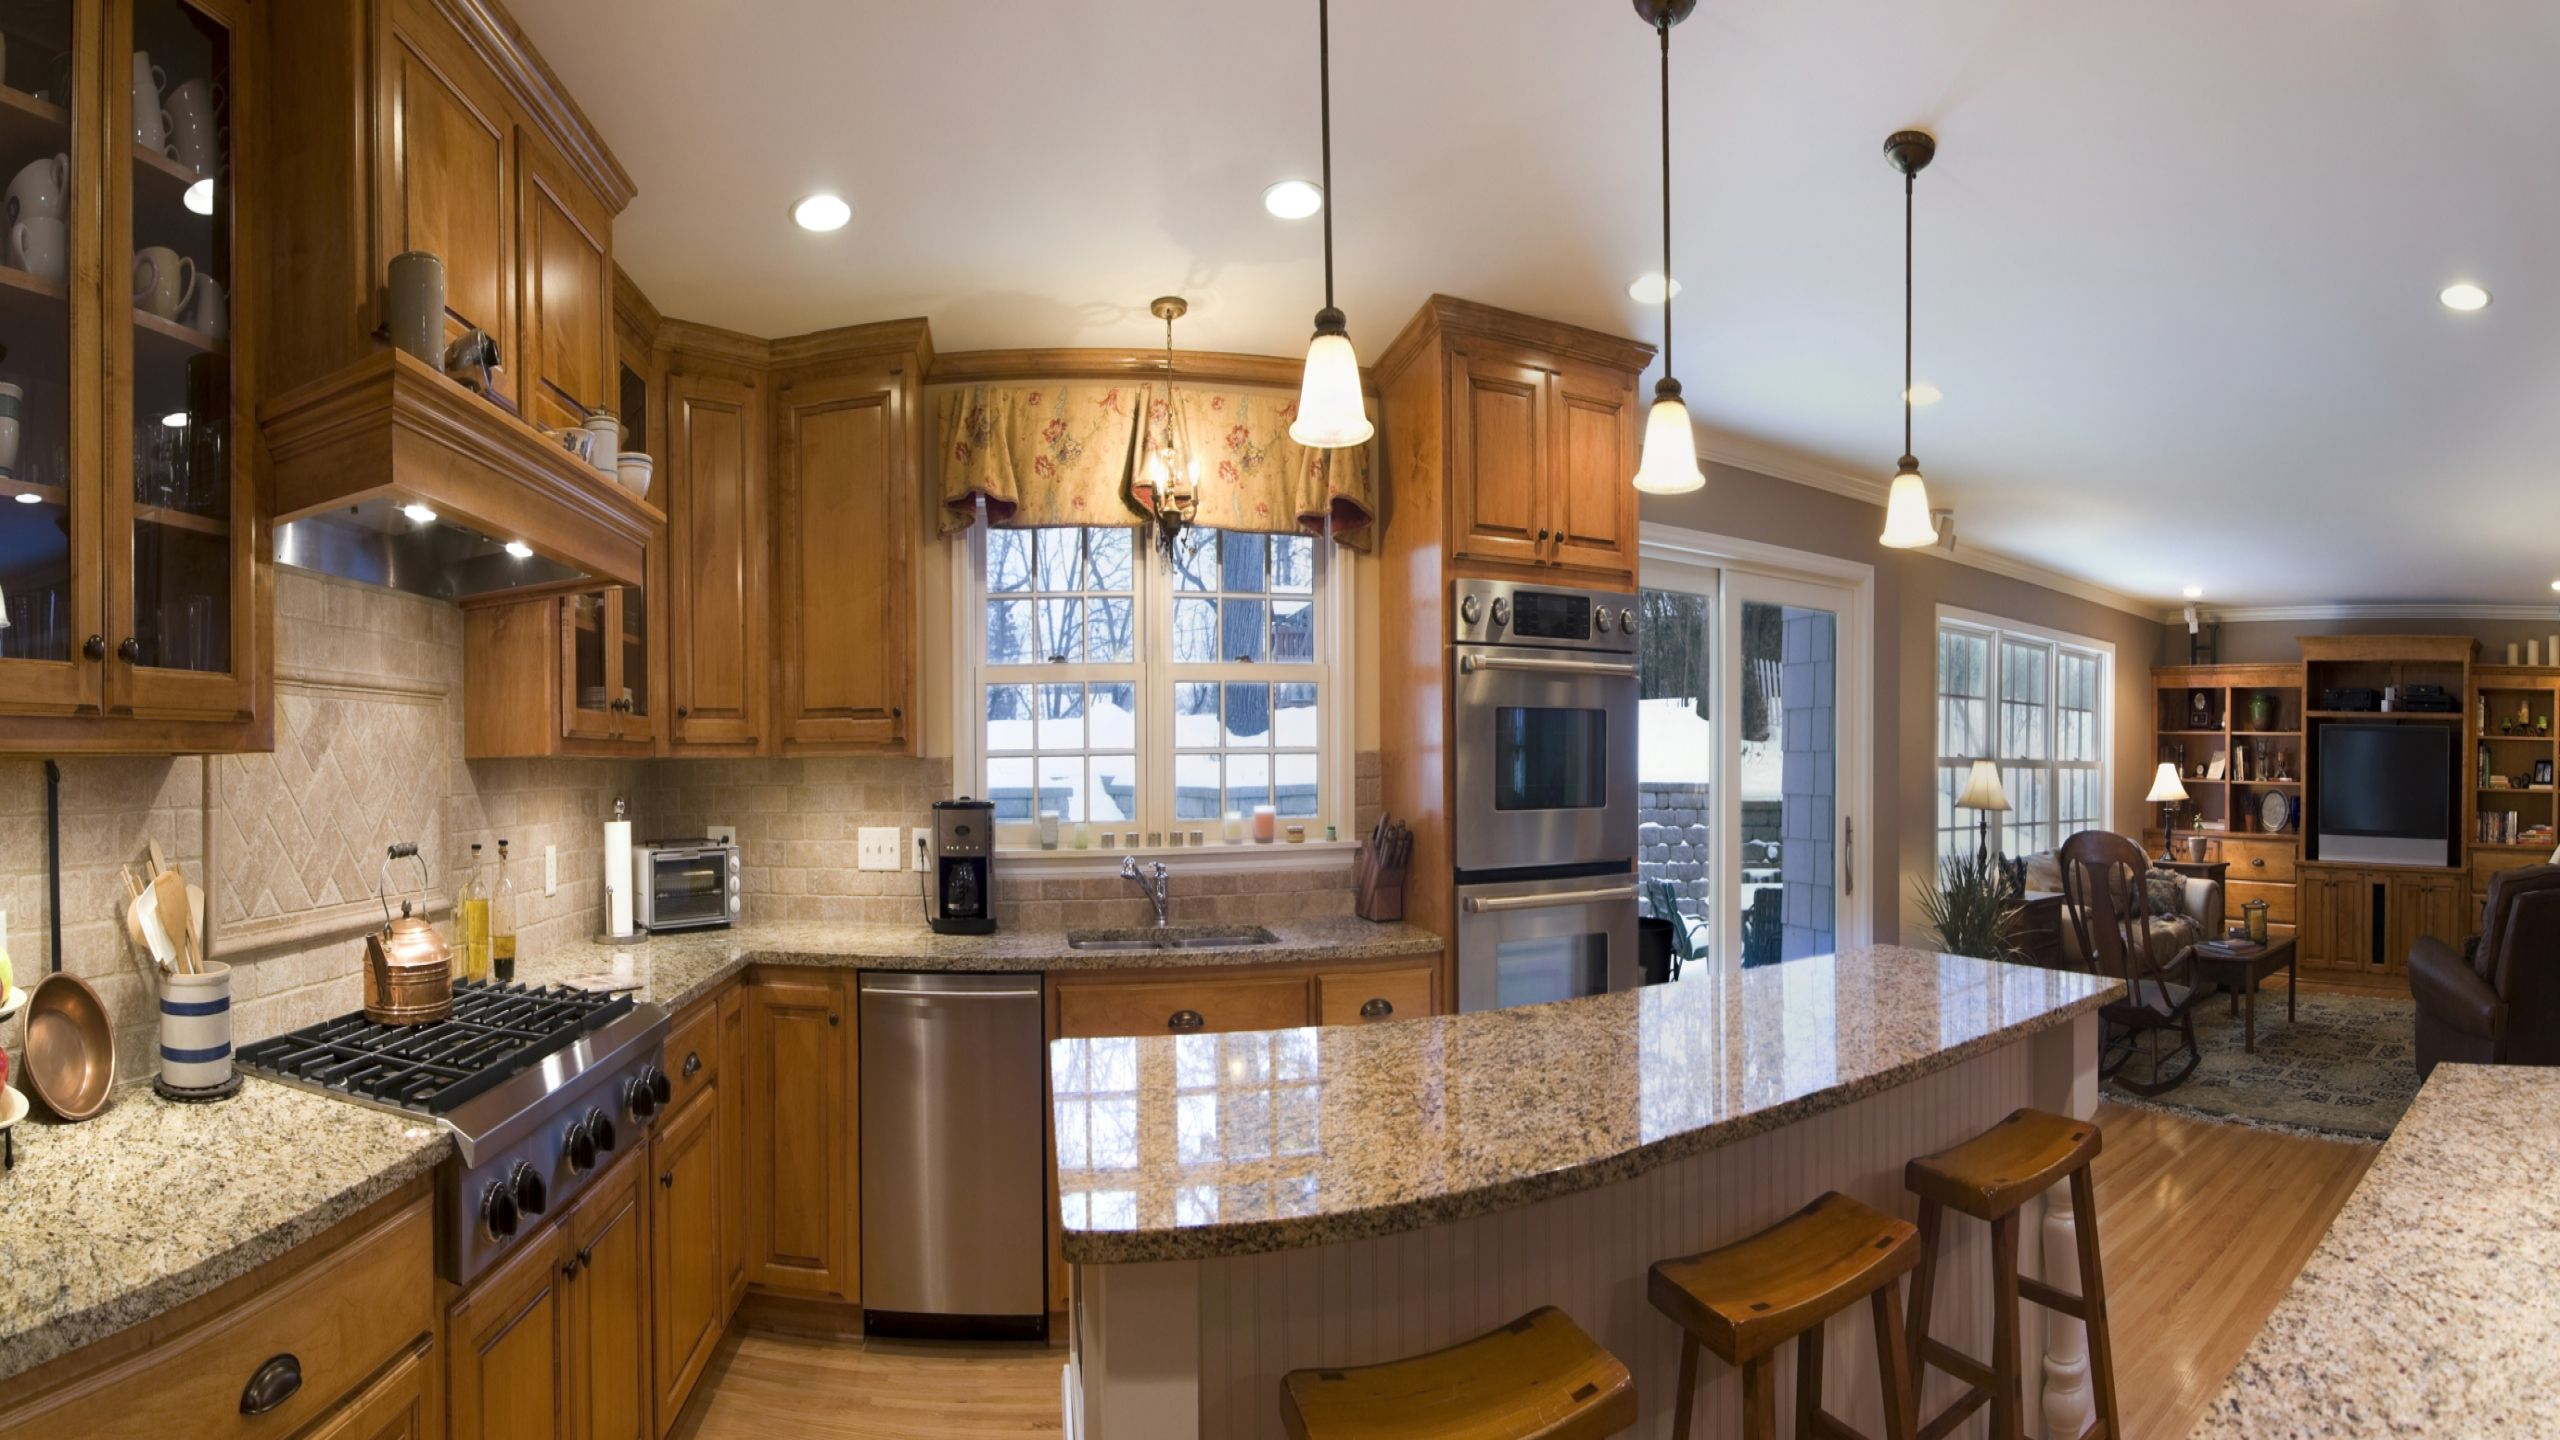 Kitchen Design Online Software Inspiration Pendant Lighting Over Island With Brown Cabinets  Google Search Review